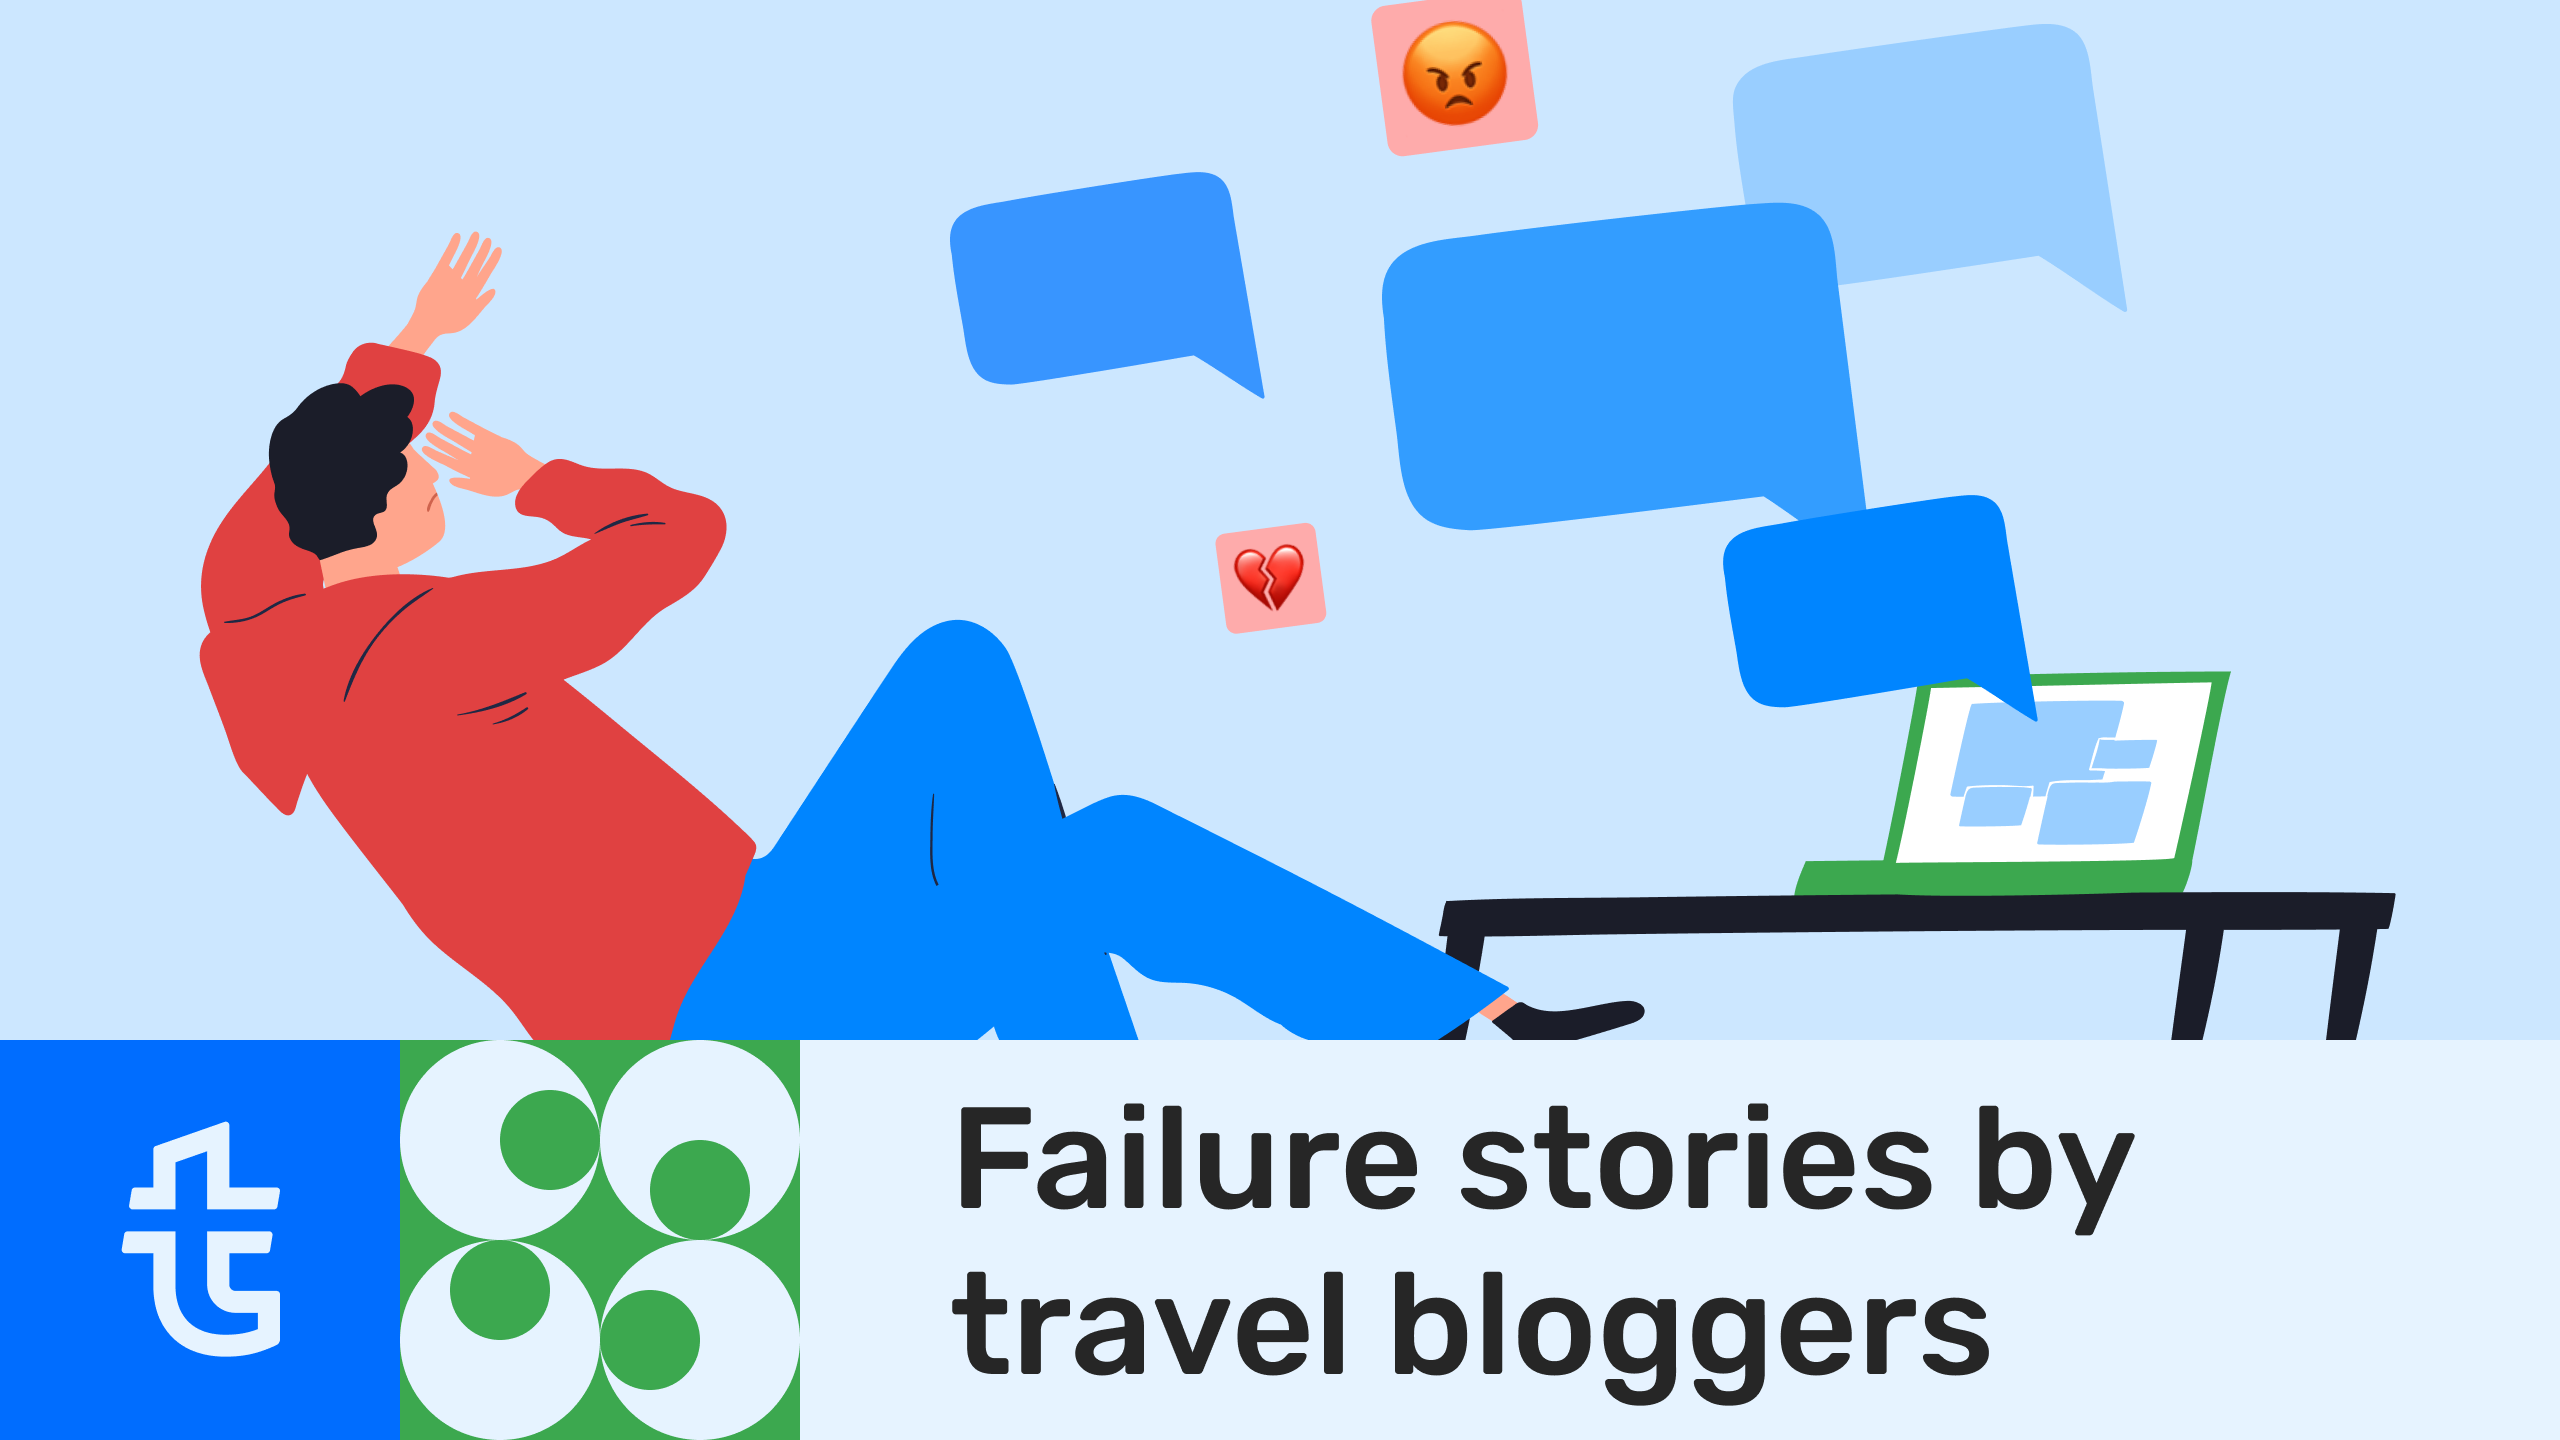 Failure stories by travel bloggers